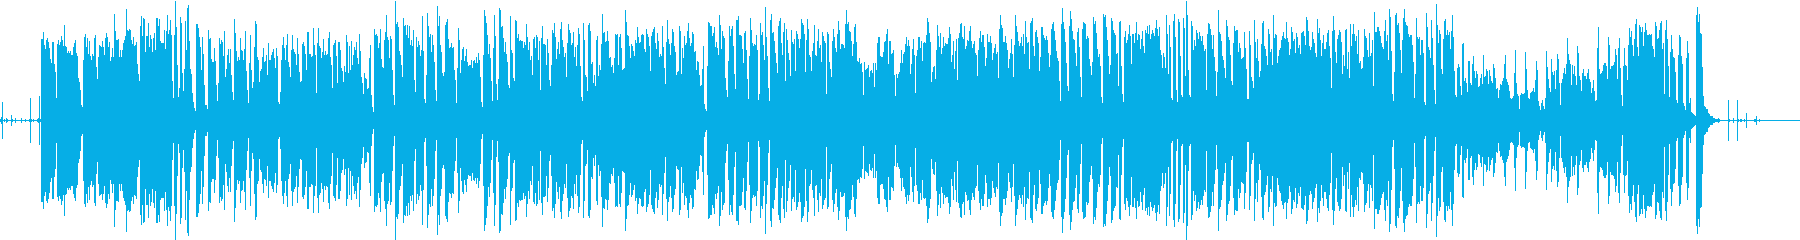 Live recording trumpet multiple recording pops's reproduced waveform